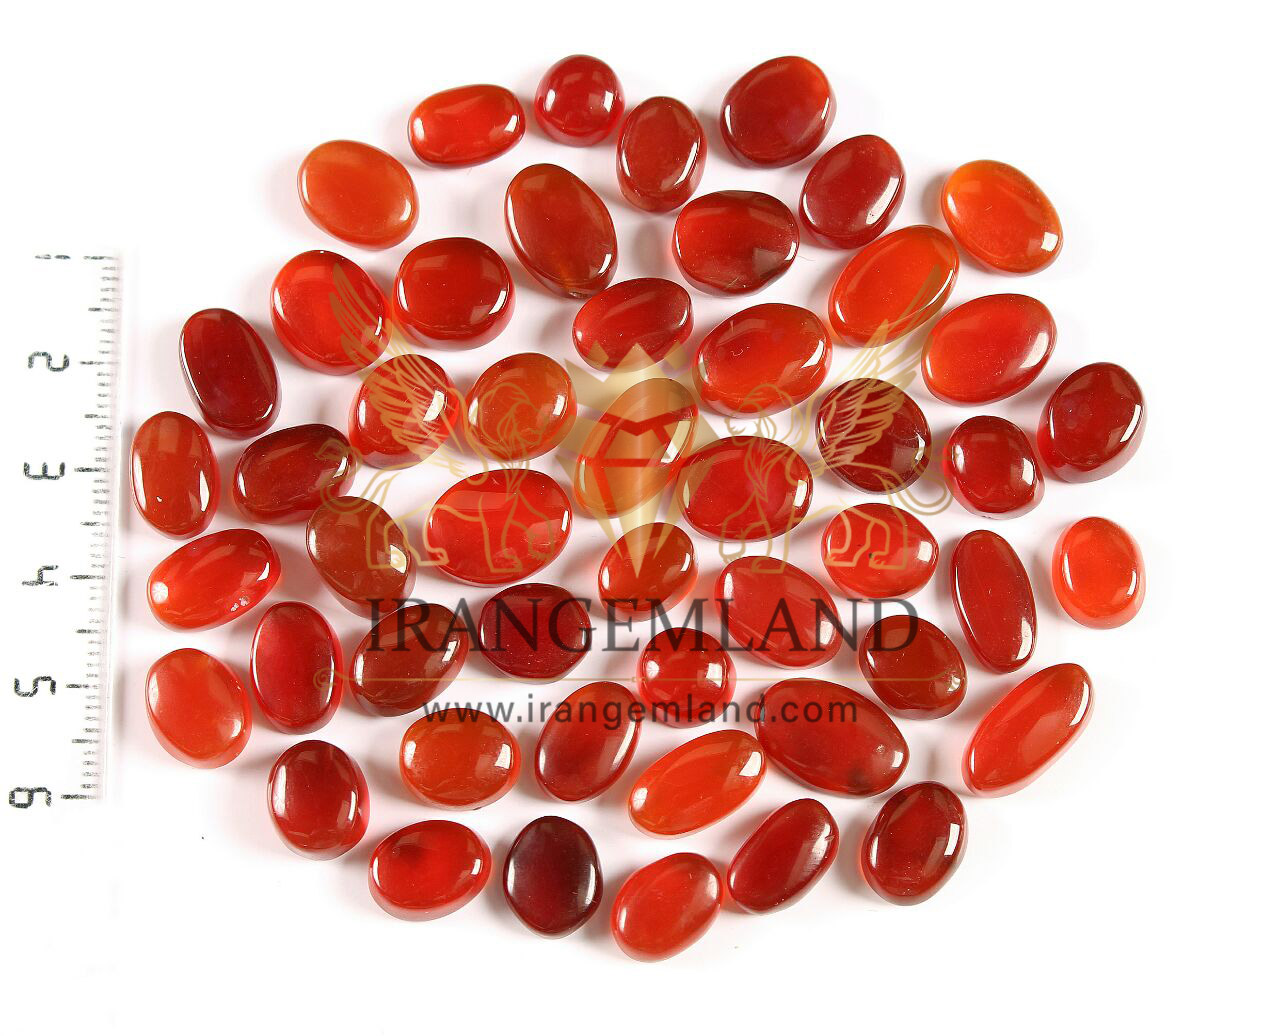 50 pieces of red Yemeni agate